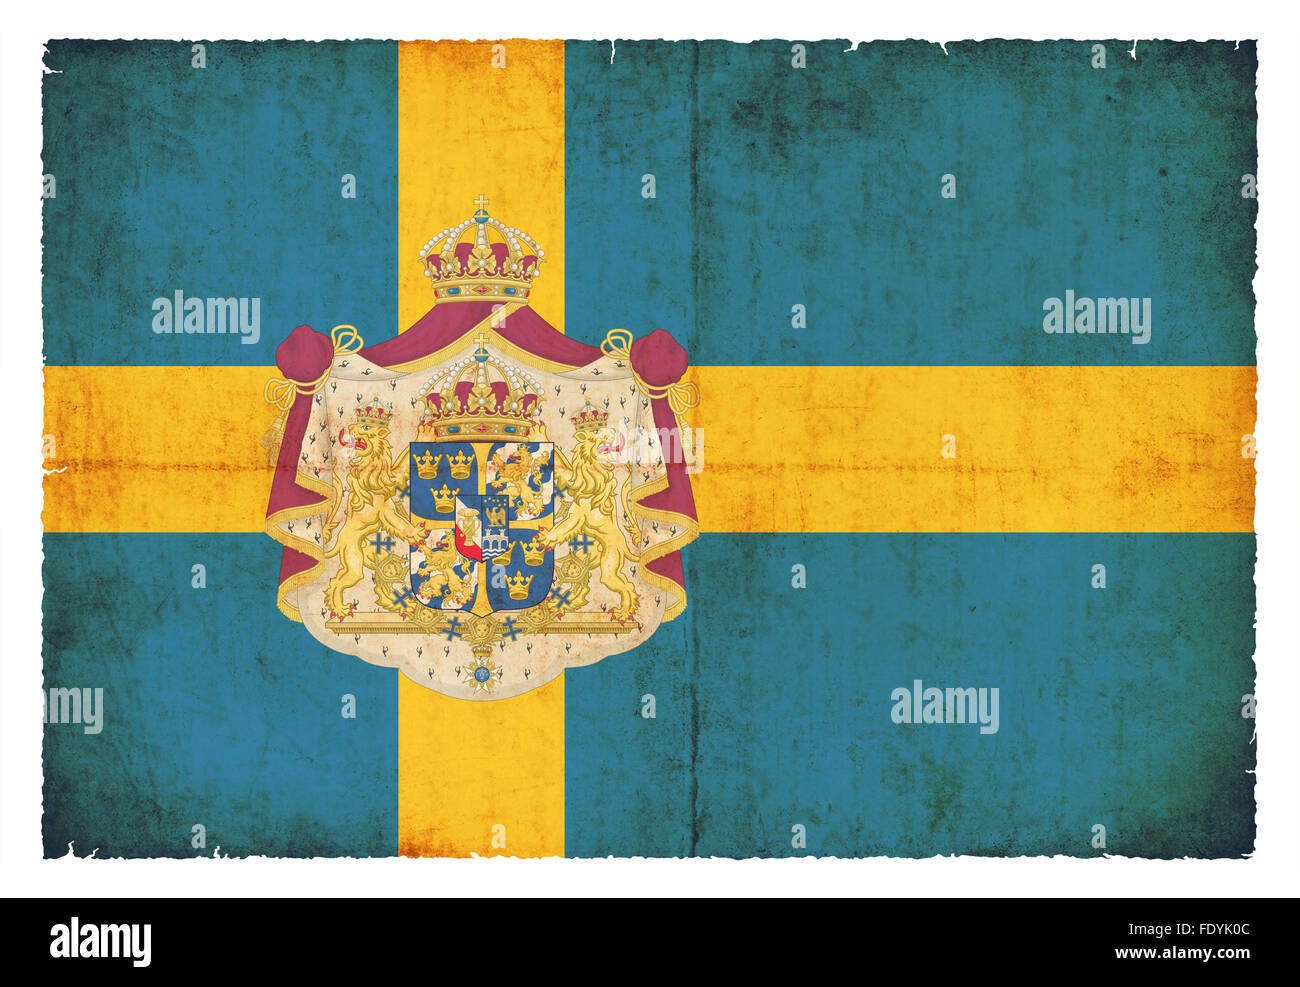 Flag of Sweden created in grunge style - Stock Image